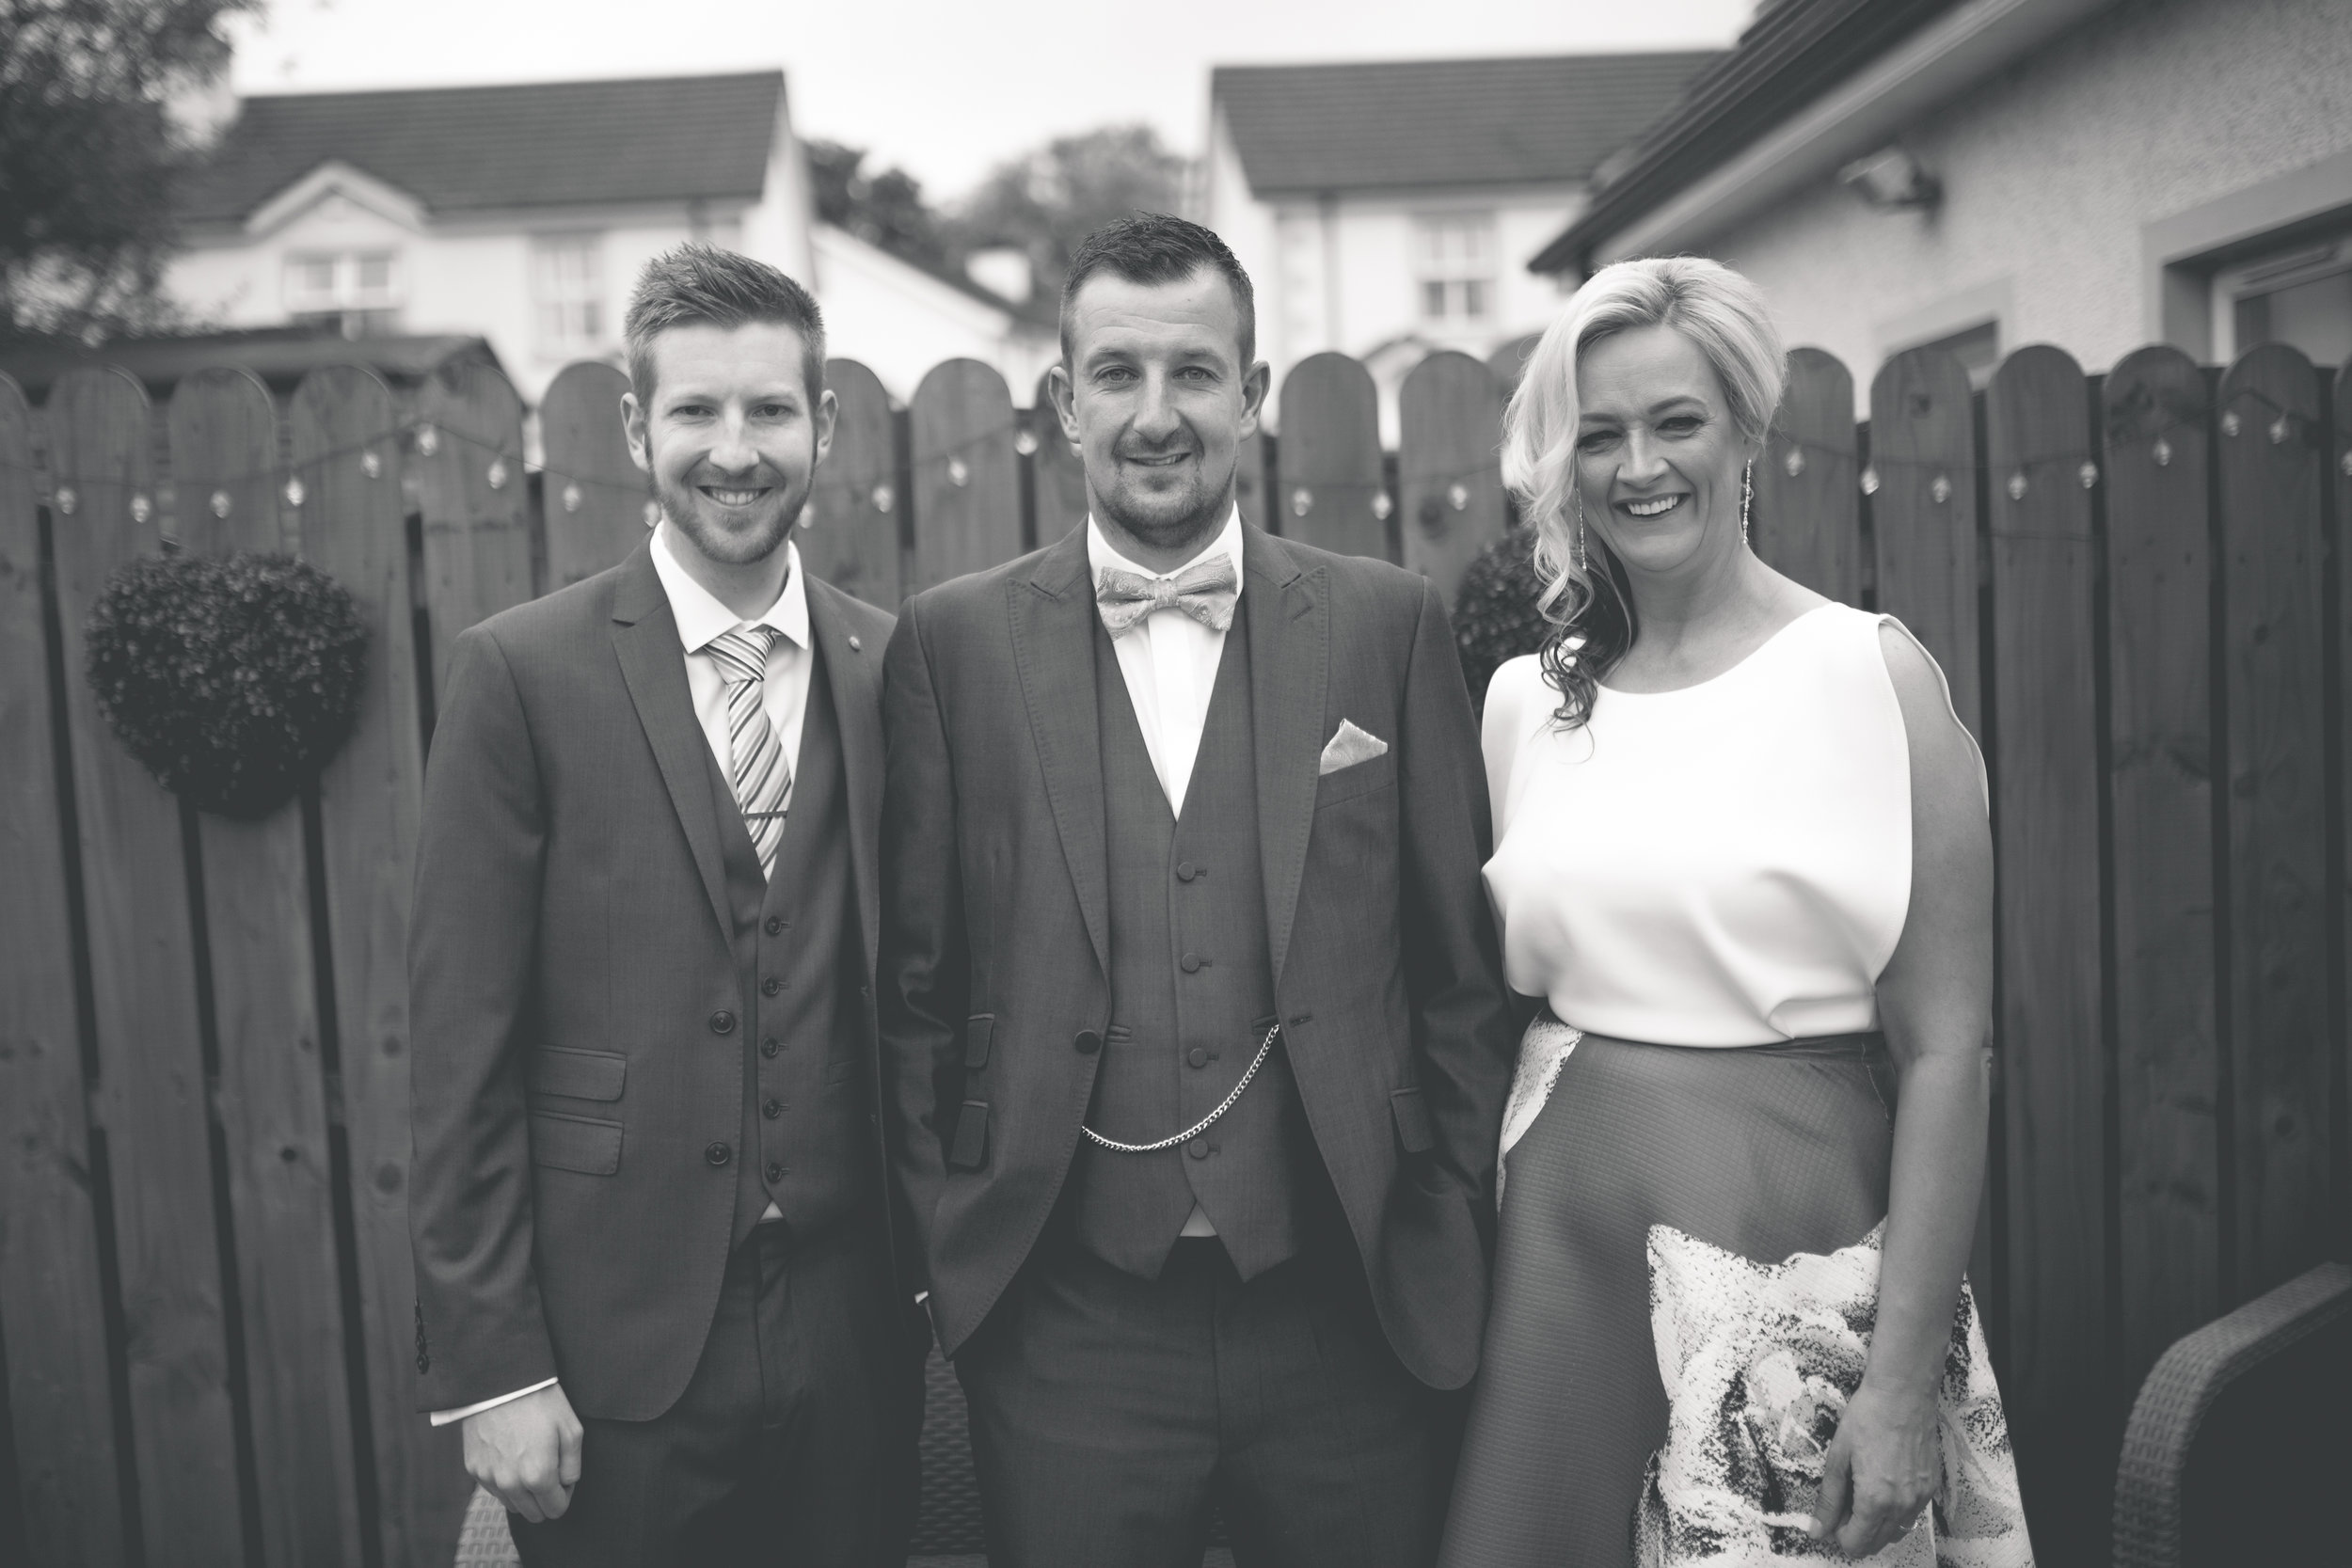 Antoinette & Stephen - Groom & Groomsmen | Brian McEwan Photography | Wedding Photographer Northern Ireland 52.jpg